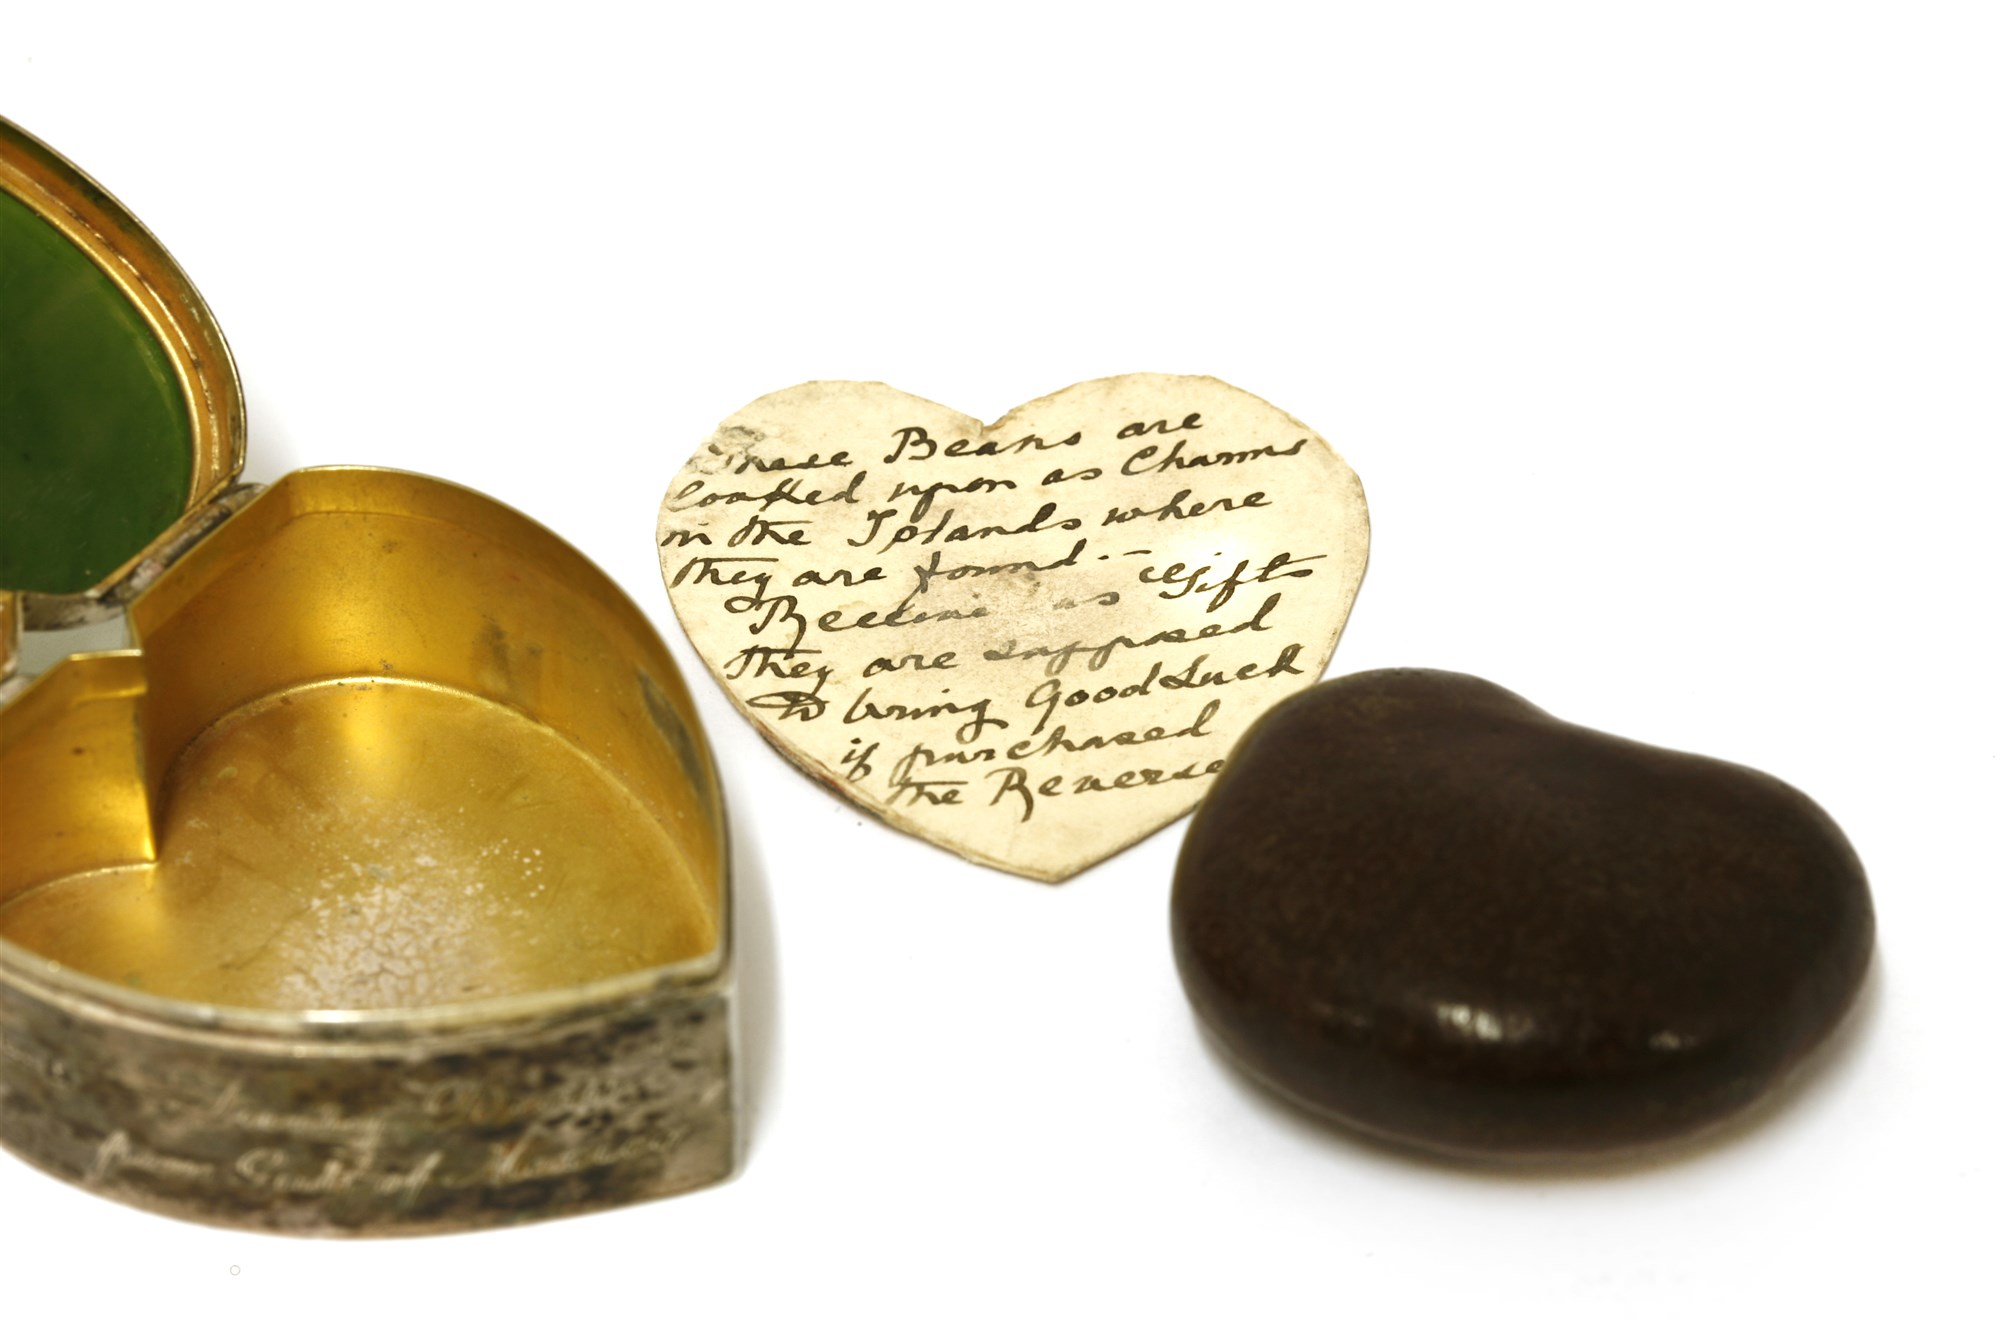 Birmingham 1905 silver and nephrite heart shaped box containing a bean from the Caribbean